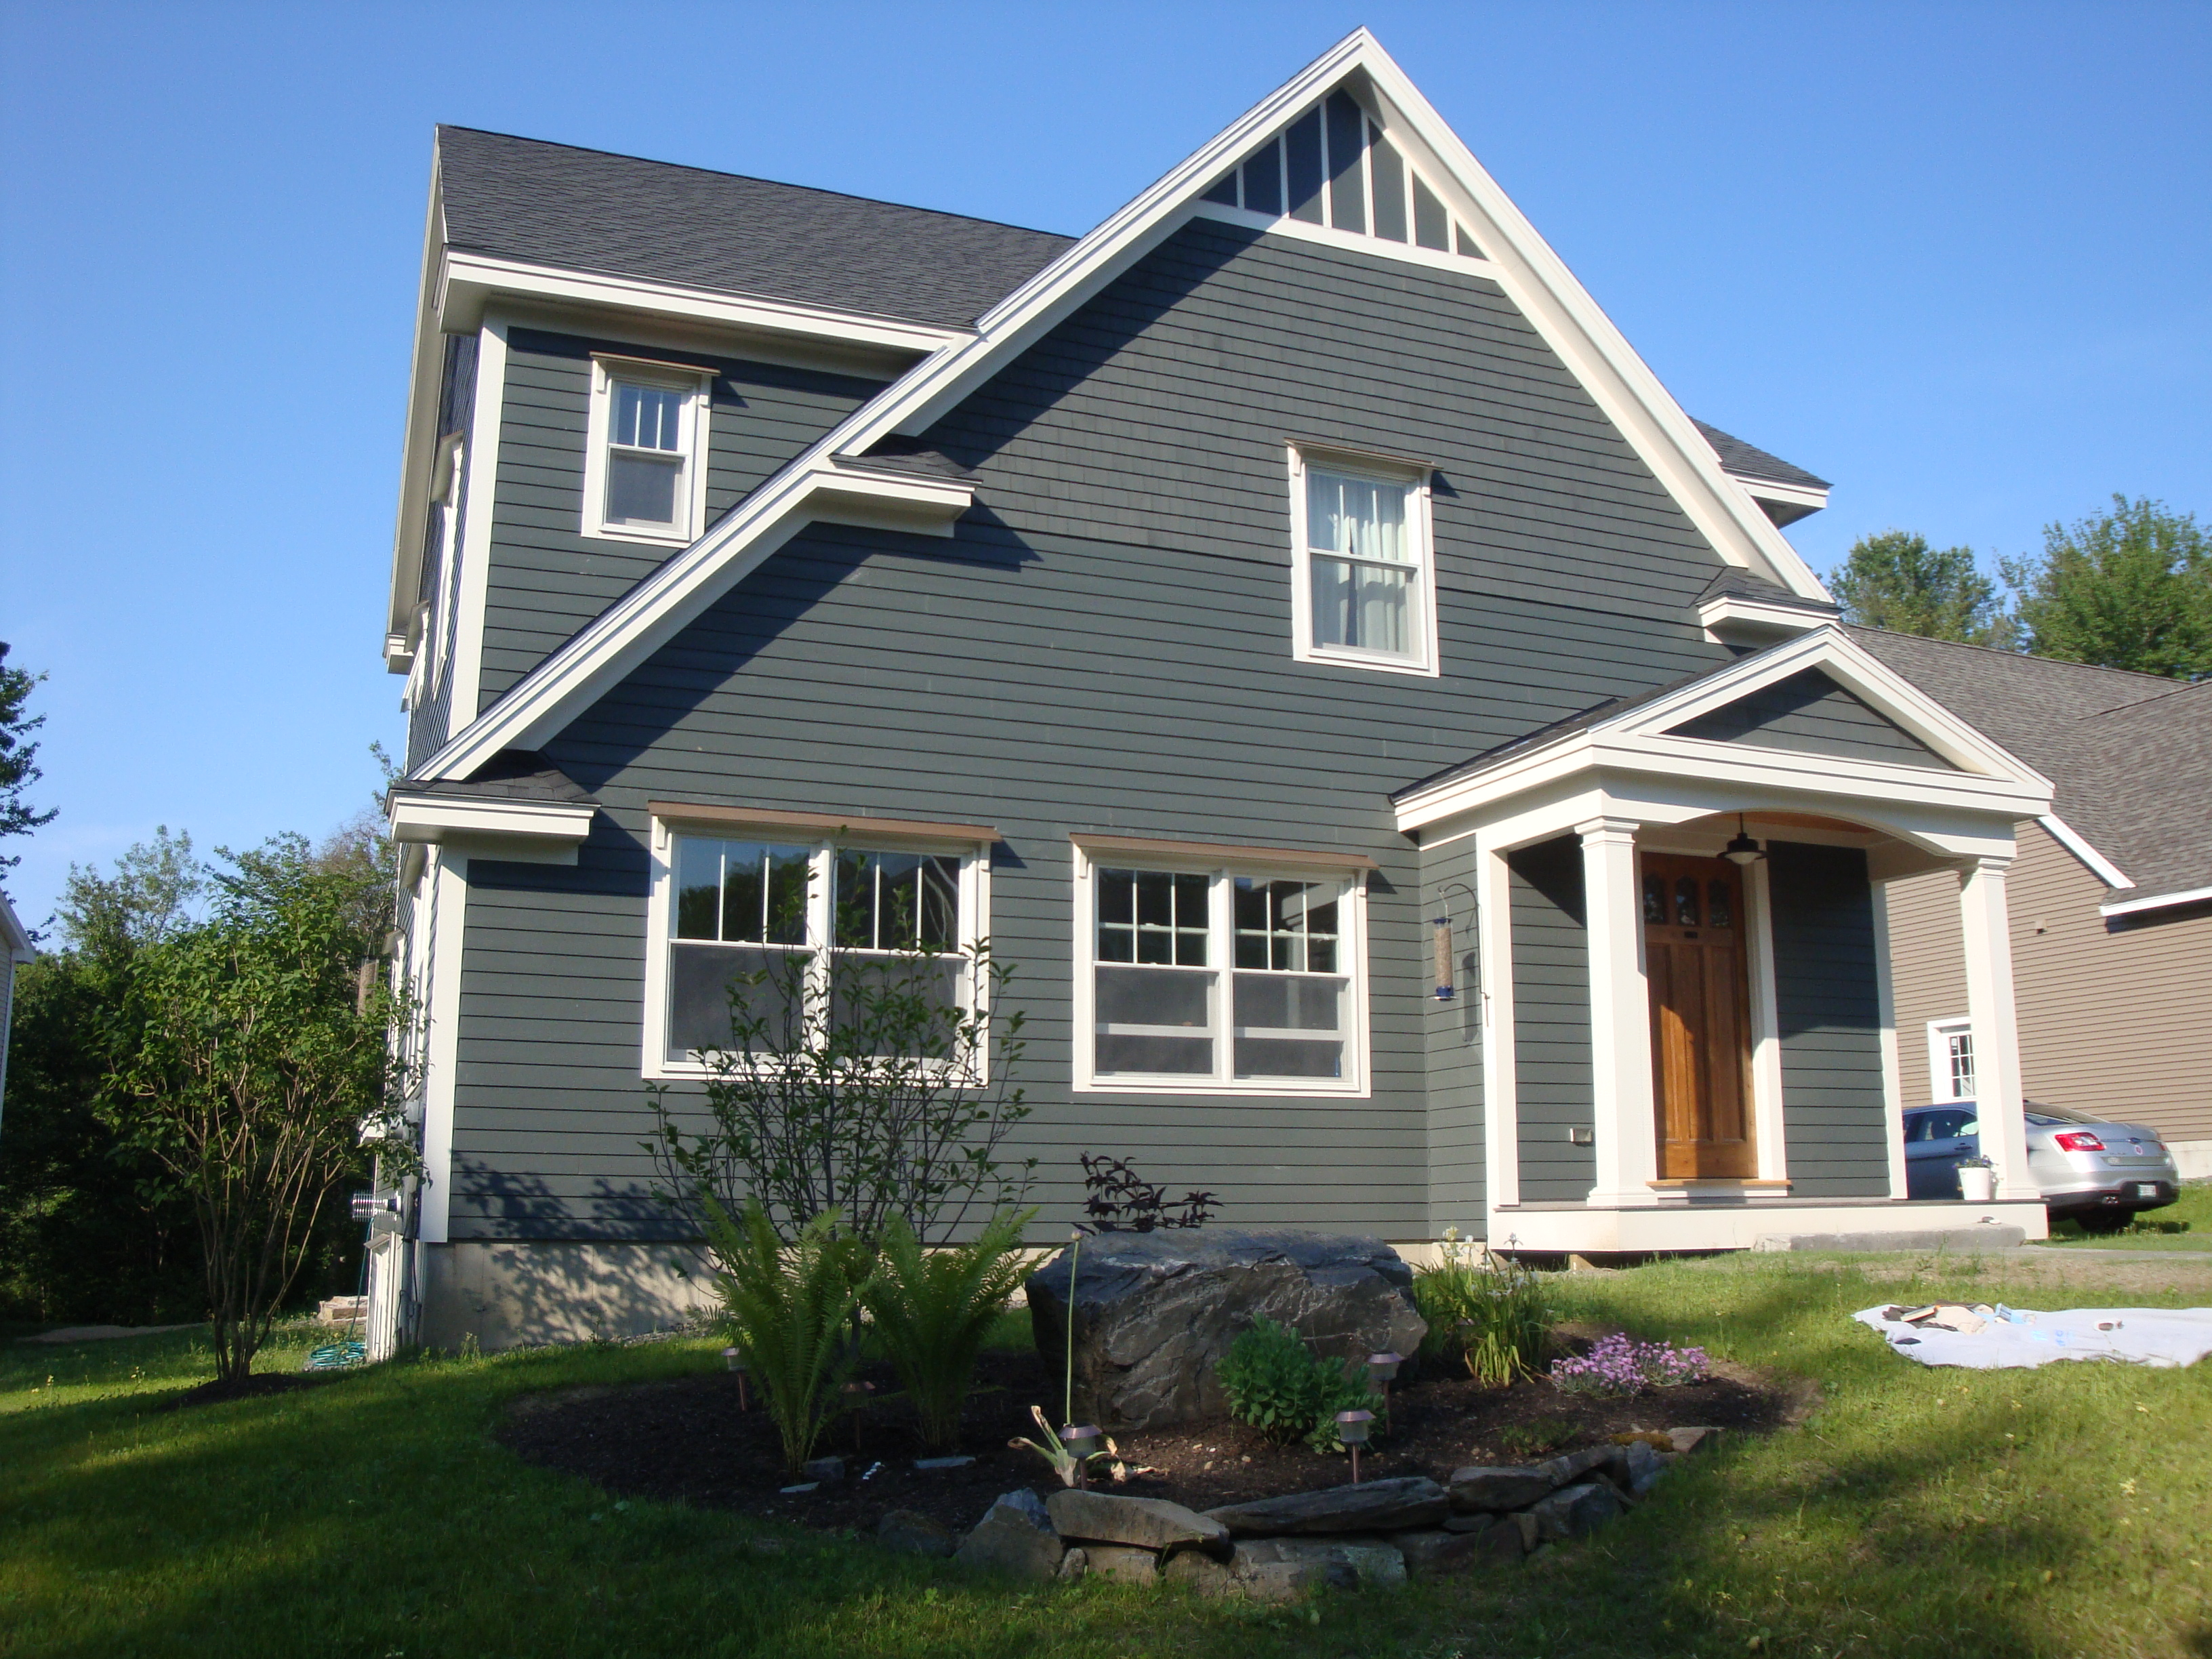 Artistic Wooden House Exterior Paint